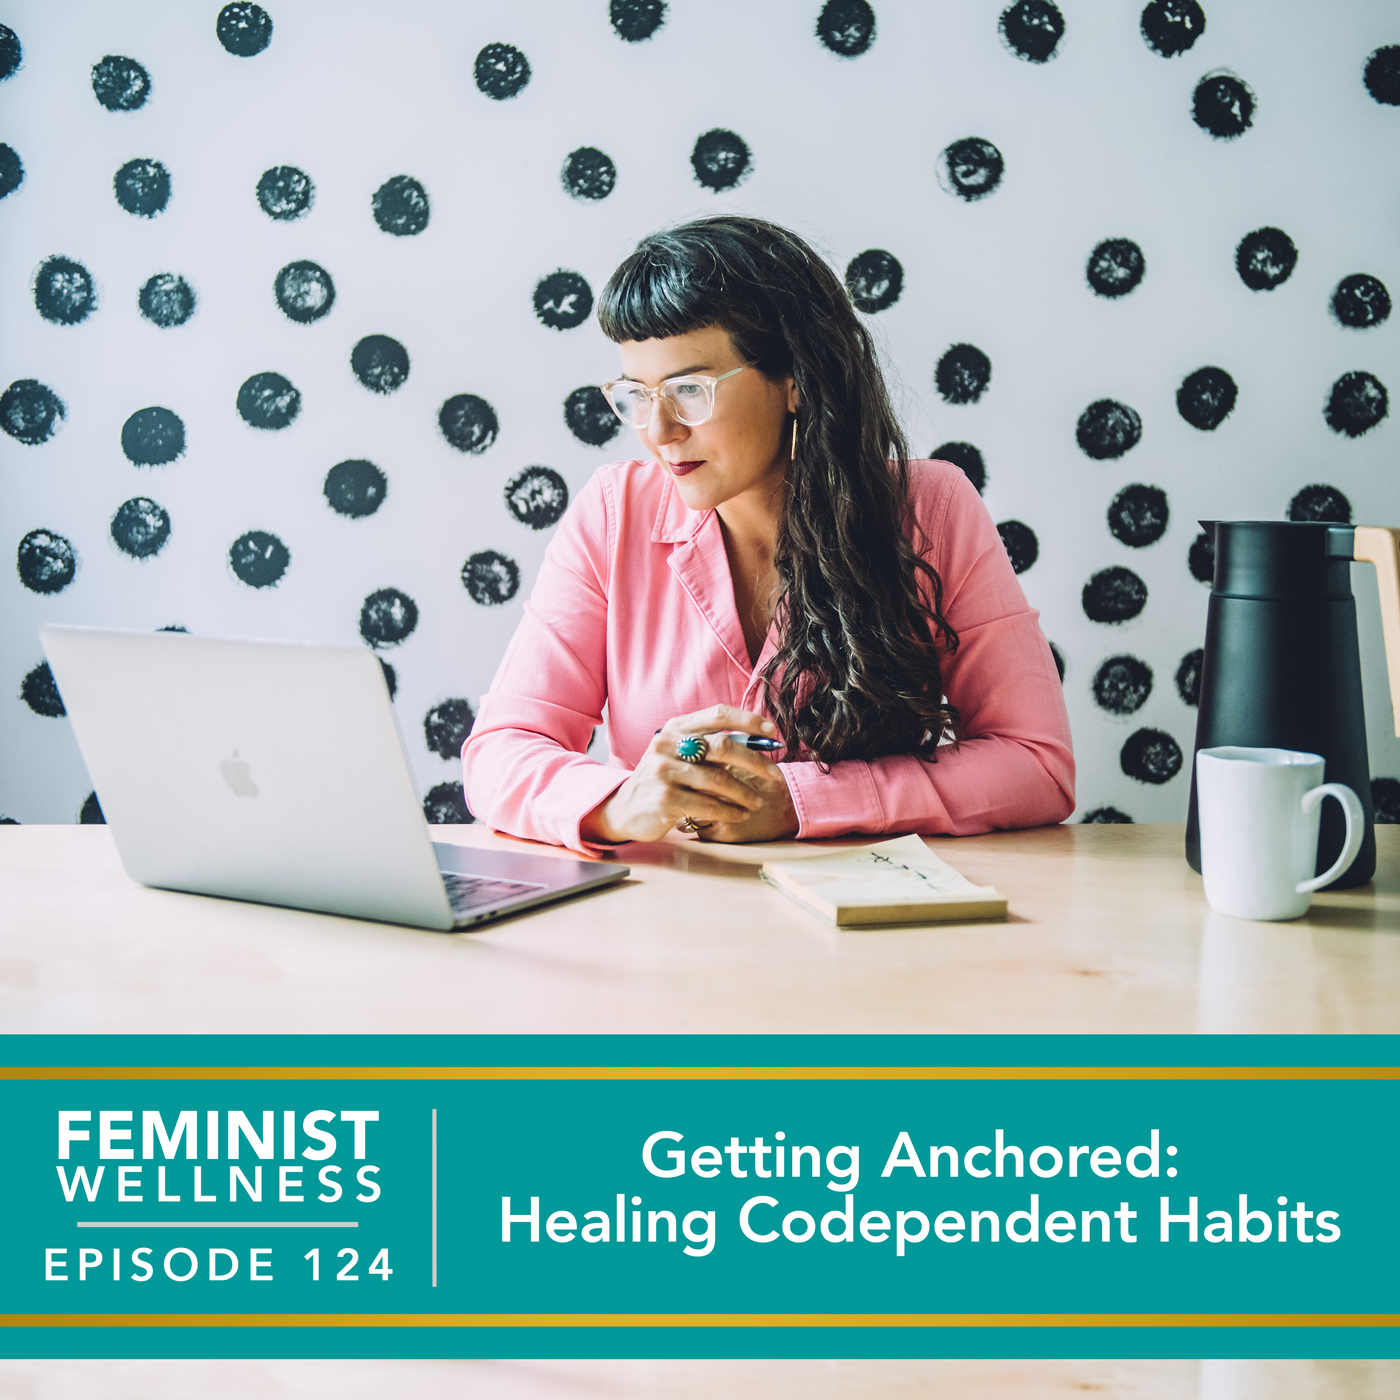 Feminist Wellness with Victoria Albina | Getting Anchored: Healing Codependent Habits